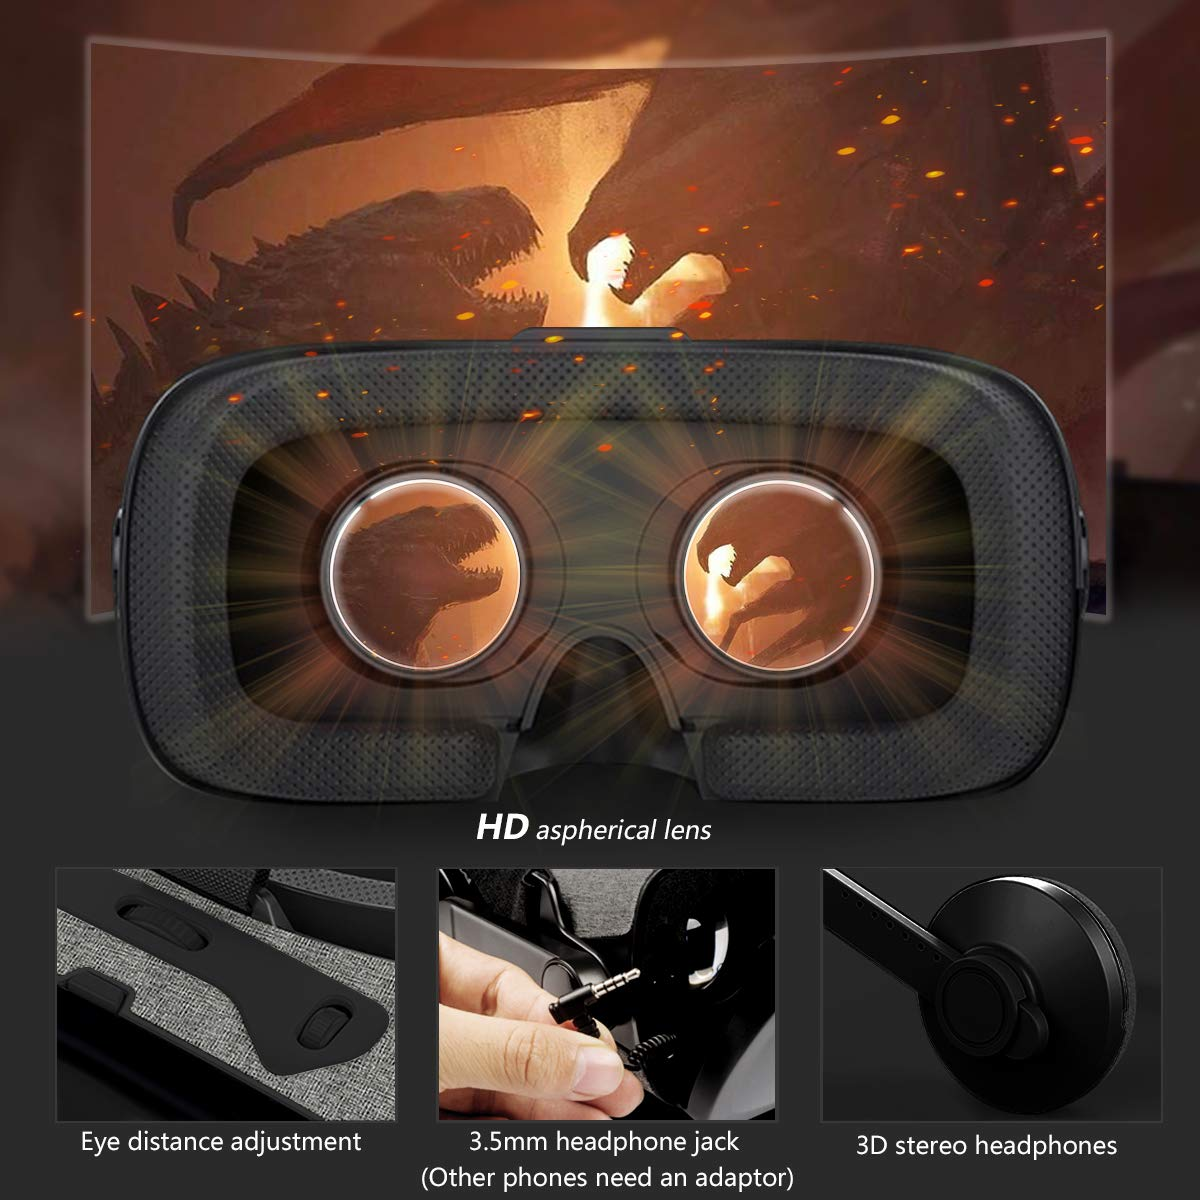 VeeR VR Falcon Headset with Controller, Universal Virtual Reality Goggles to Comfortable Watch 360 Movies for Android, Samsung Galaxy S9 & Note 9, Huawei and iPhone XR & Xs Max by VeeR (Image #2)